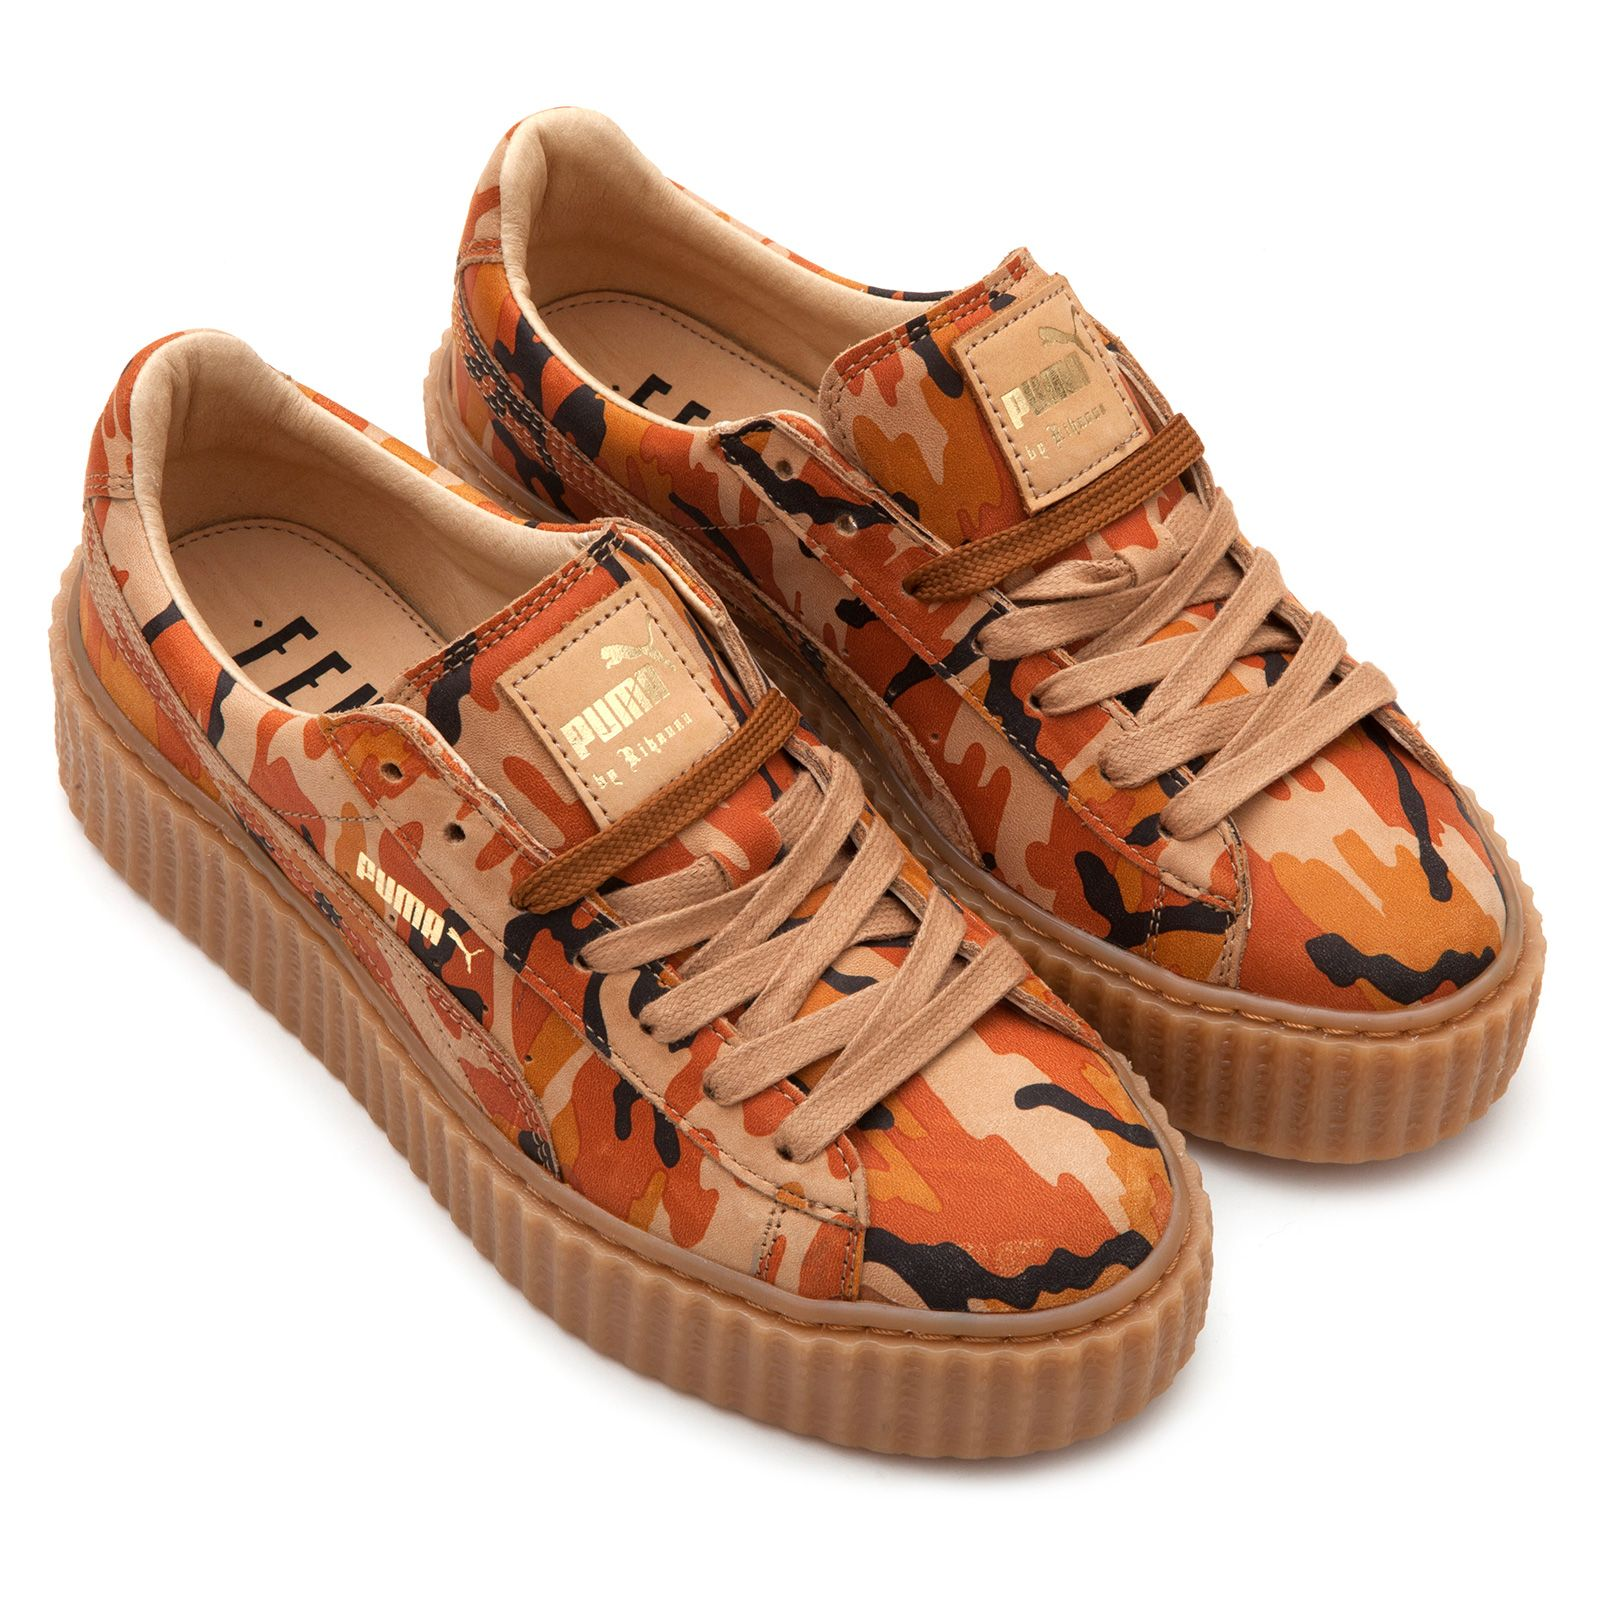 Fenty Puma by Rihanna / Creeper Suede Camo by Rihanna / Shoes | Storm